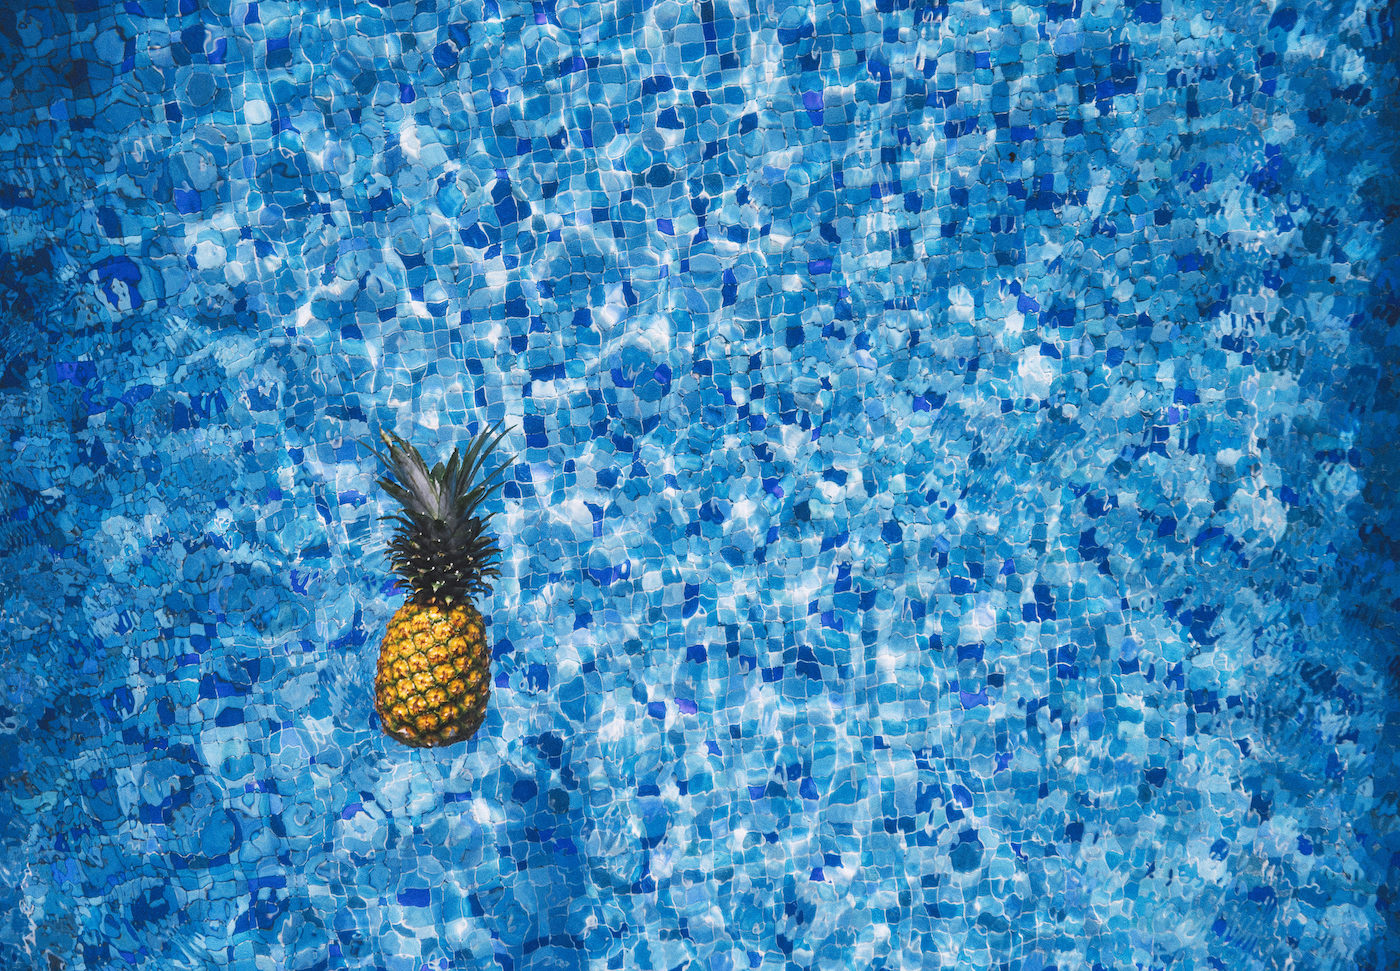 How to Host an Amazing Pool Party This Summer